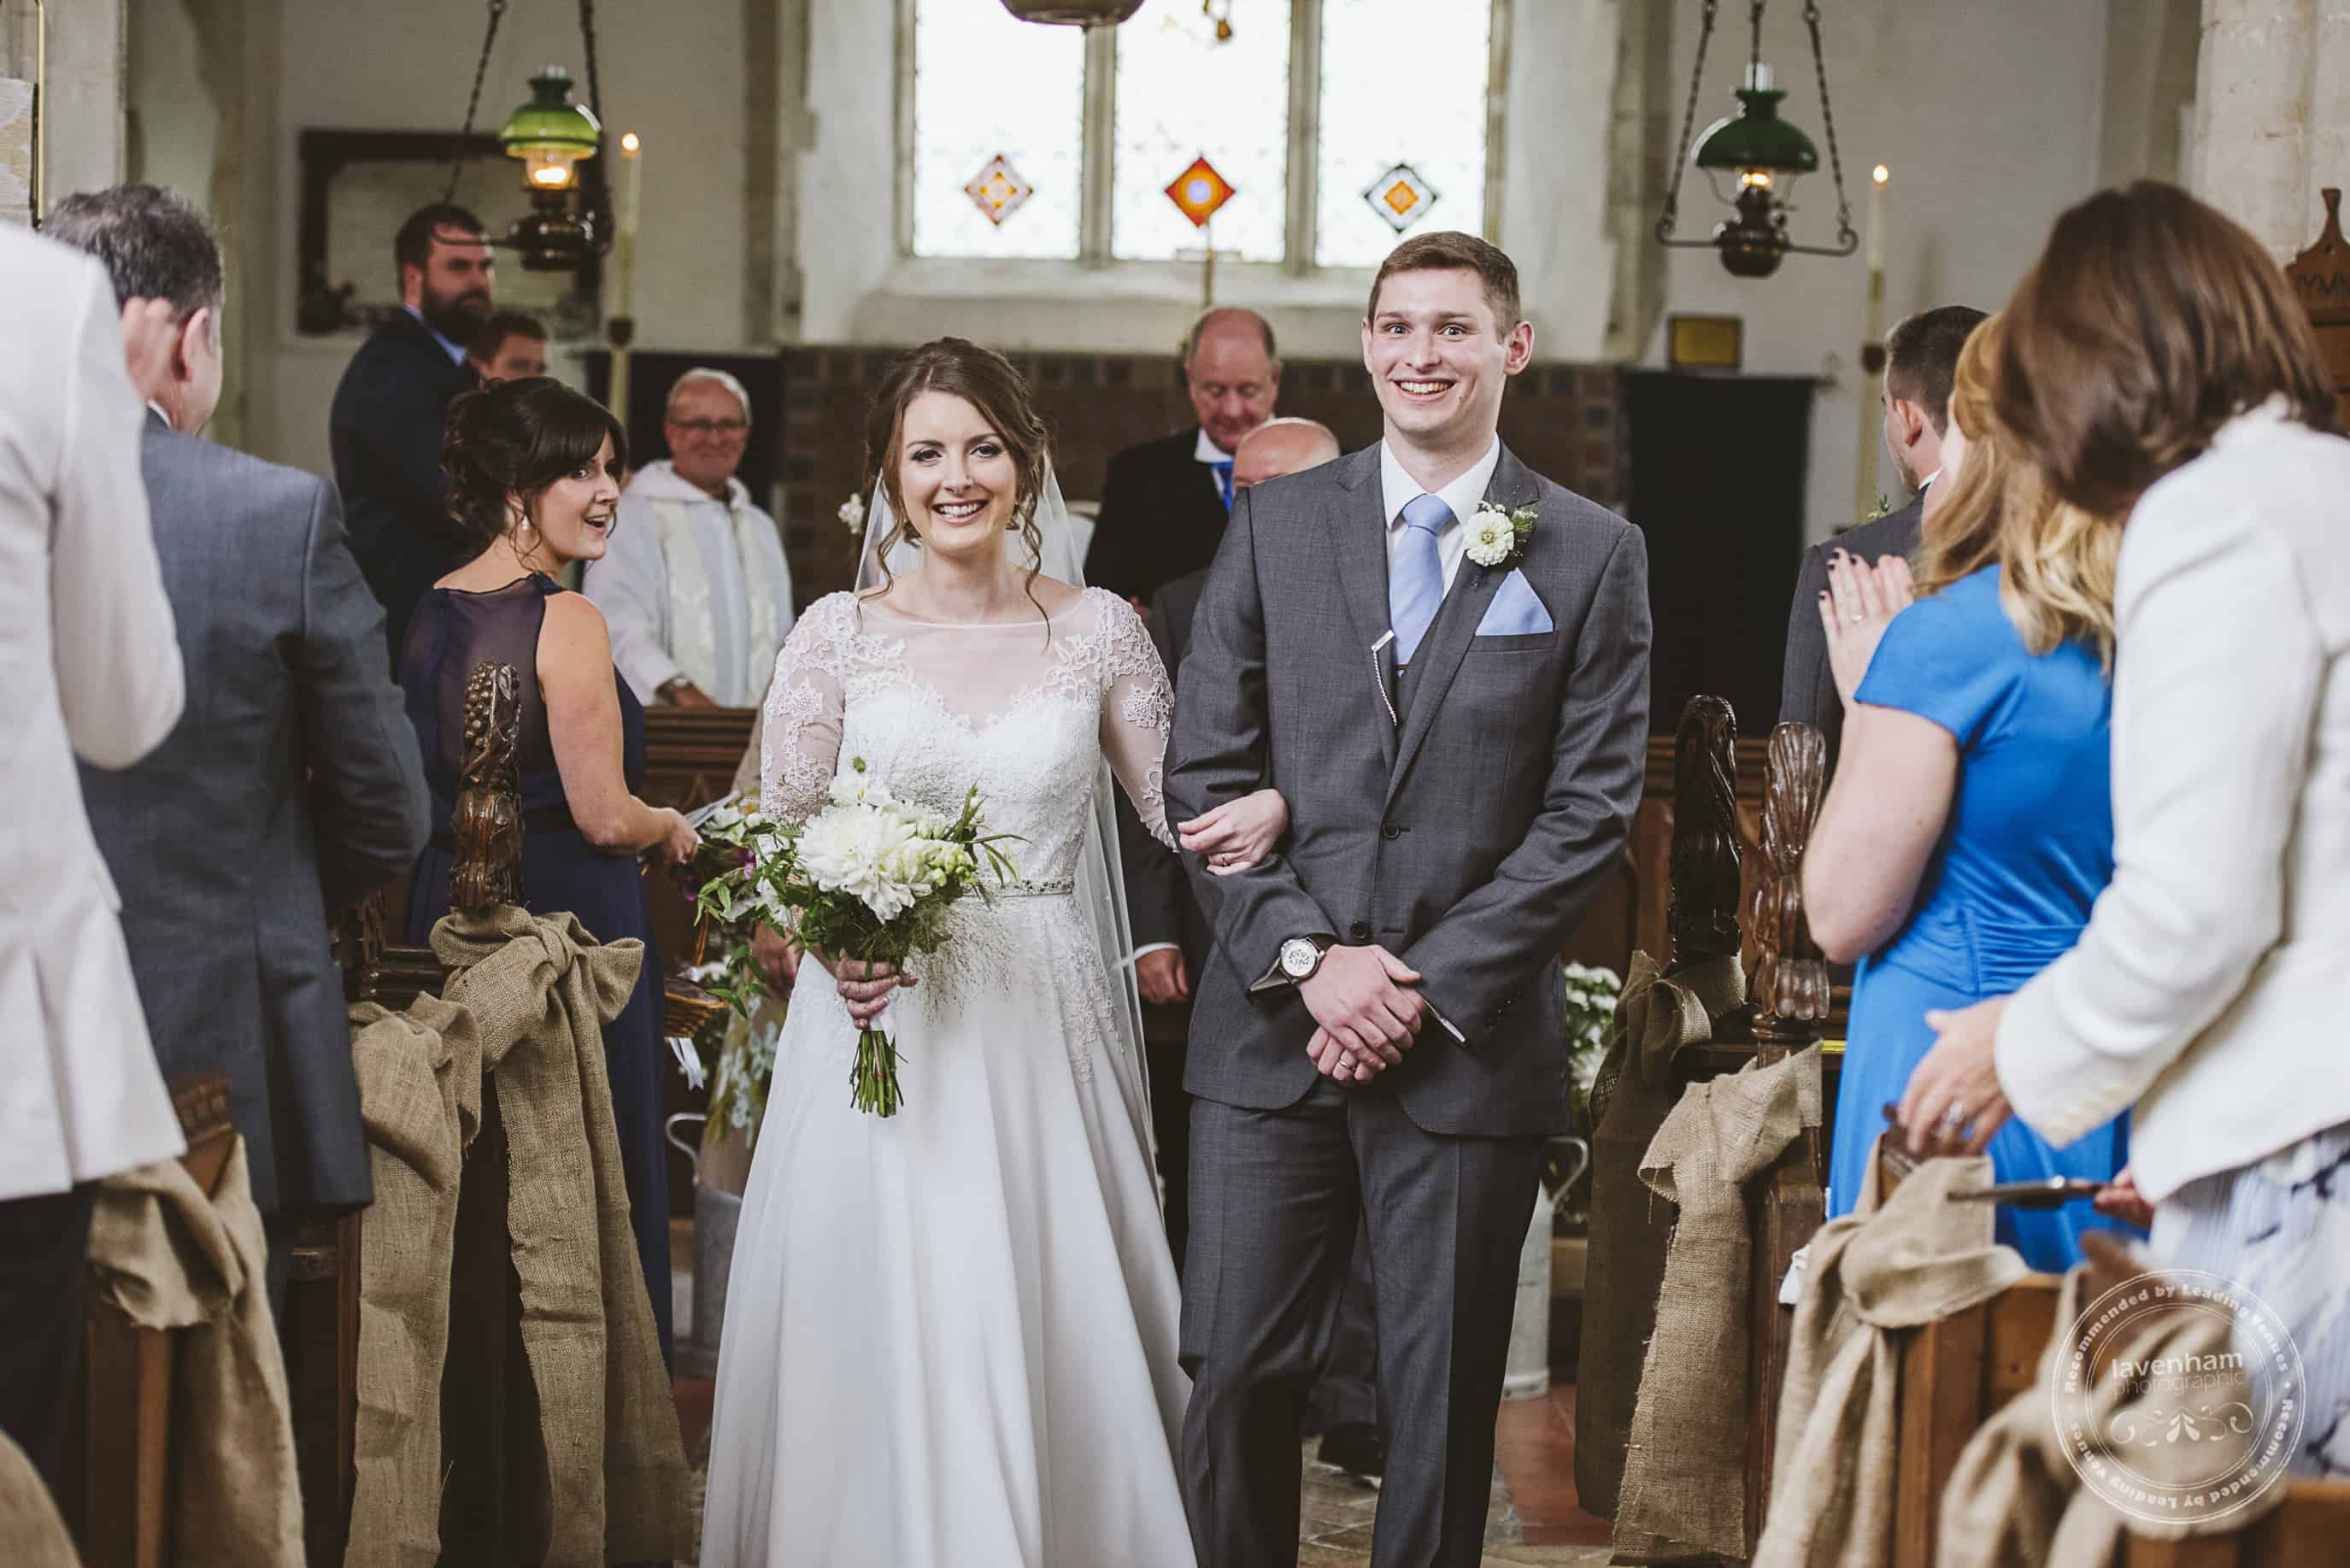 220918 Alpheton Barn Wedding Photography by Lavenham Photographic 062